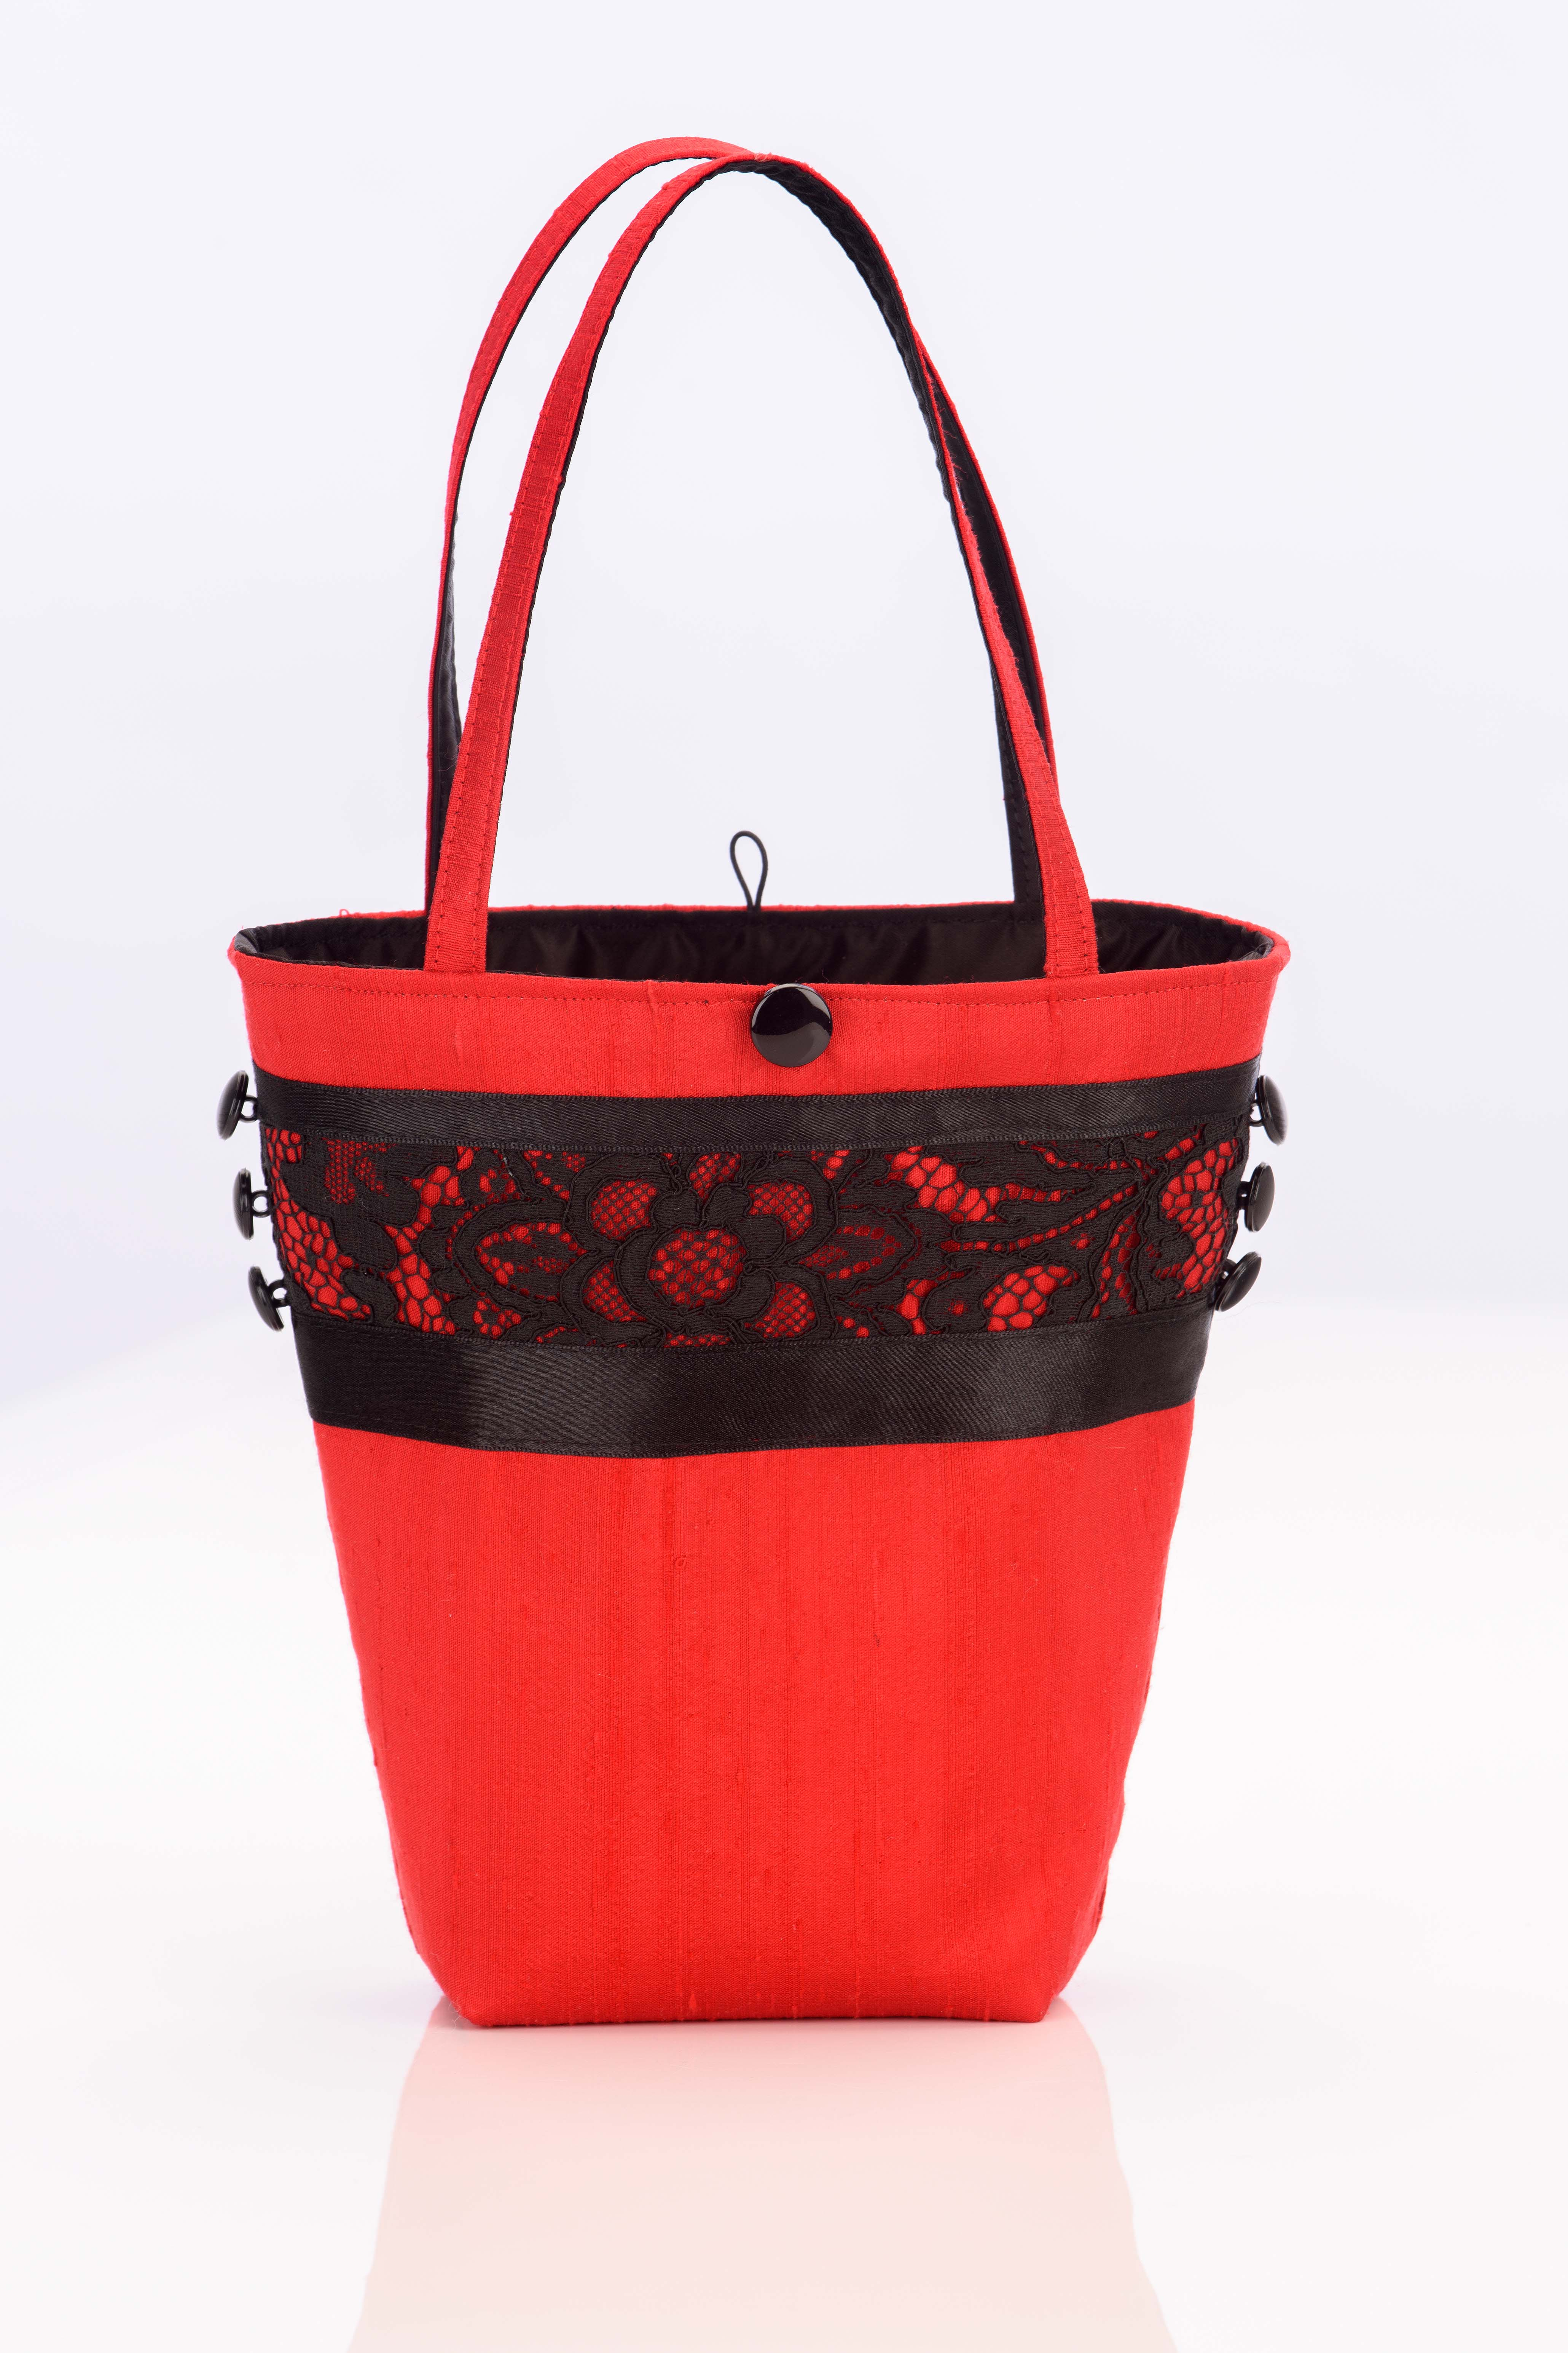 Red silk handbag with vintage black lace